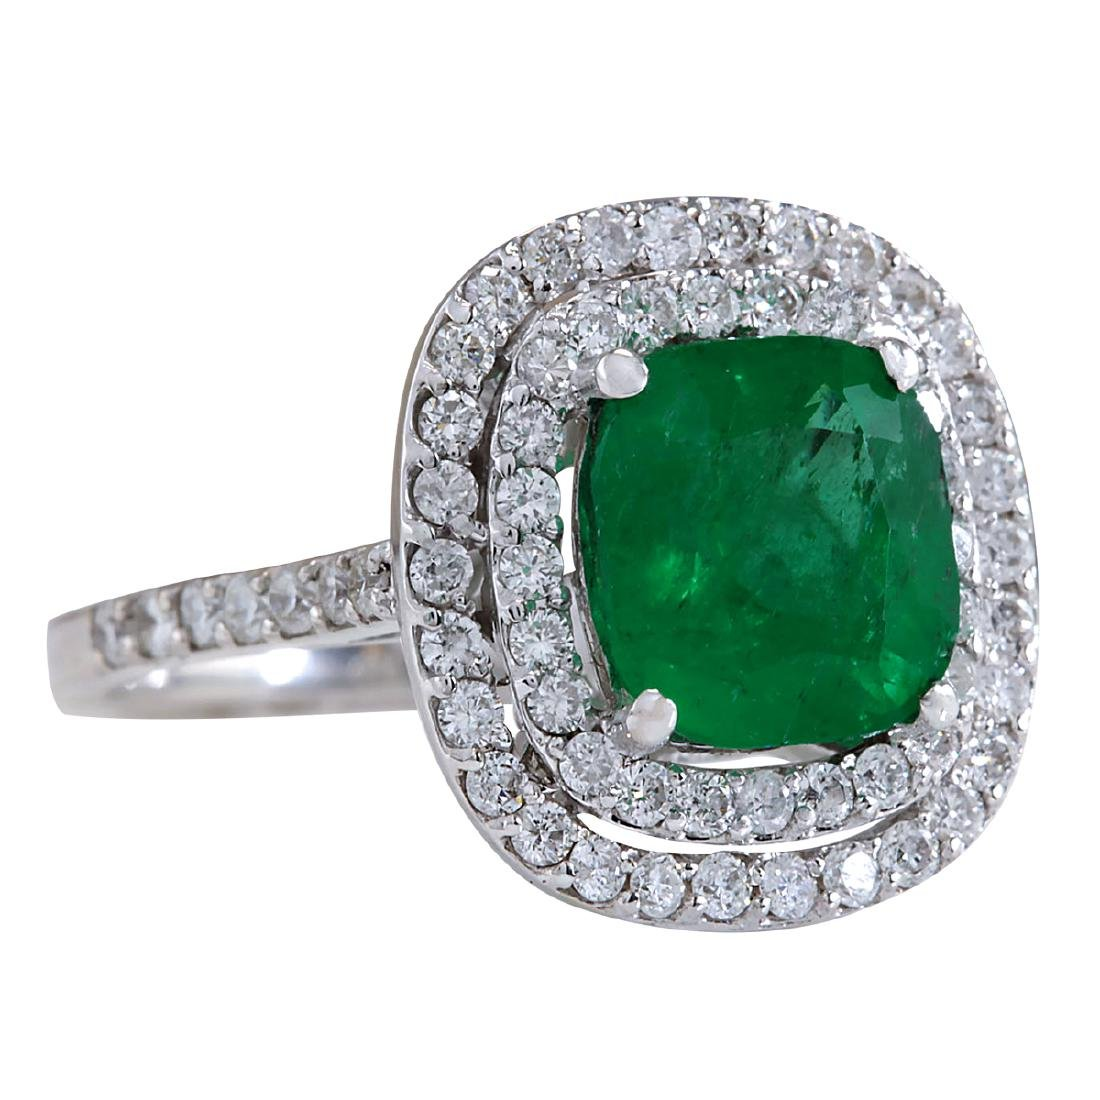 3.74CTW Natural Emerald And Diamond Ring In 14K White - 2